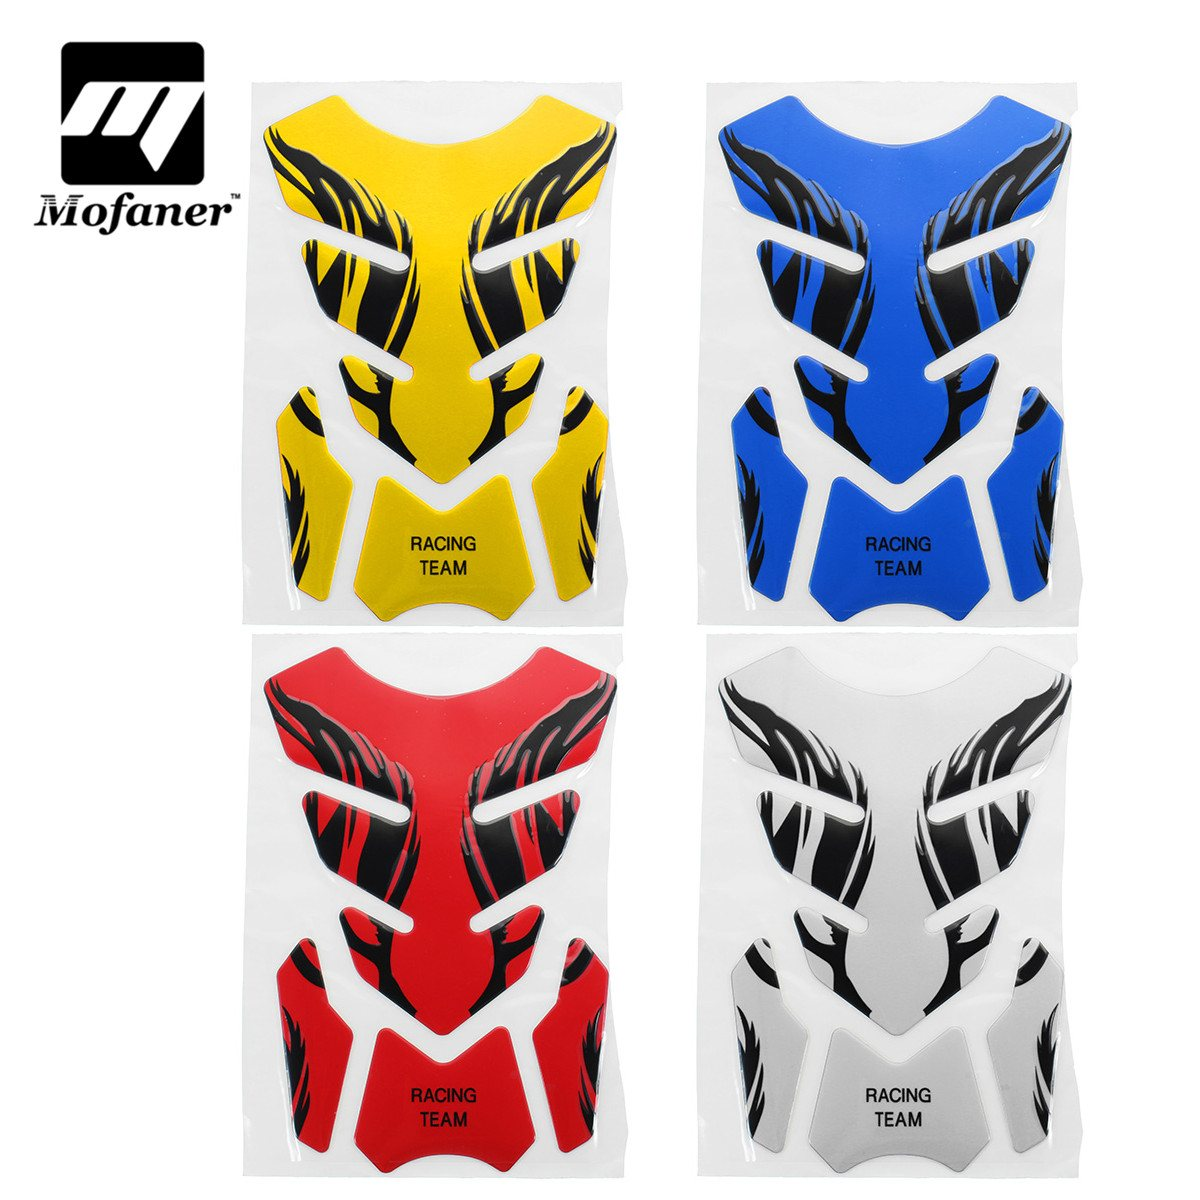 Mofaner Waterproor Motorcycle Gas Tank Sticker Motorbike Fuel Oil Tank Pad Decal Sticker Protector Cover For Kawasaki For Honda